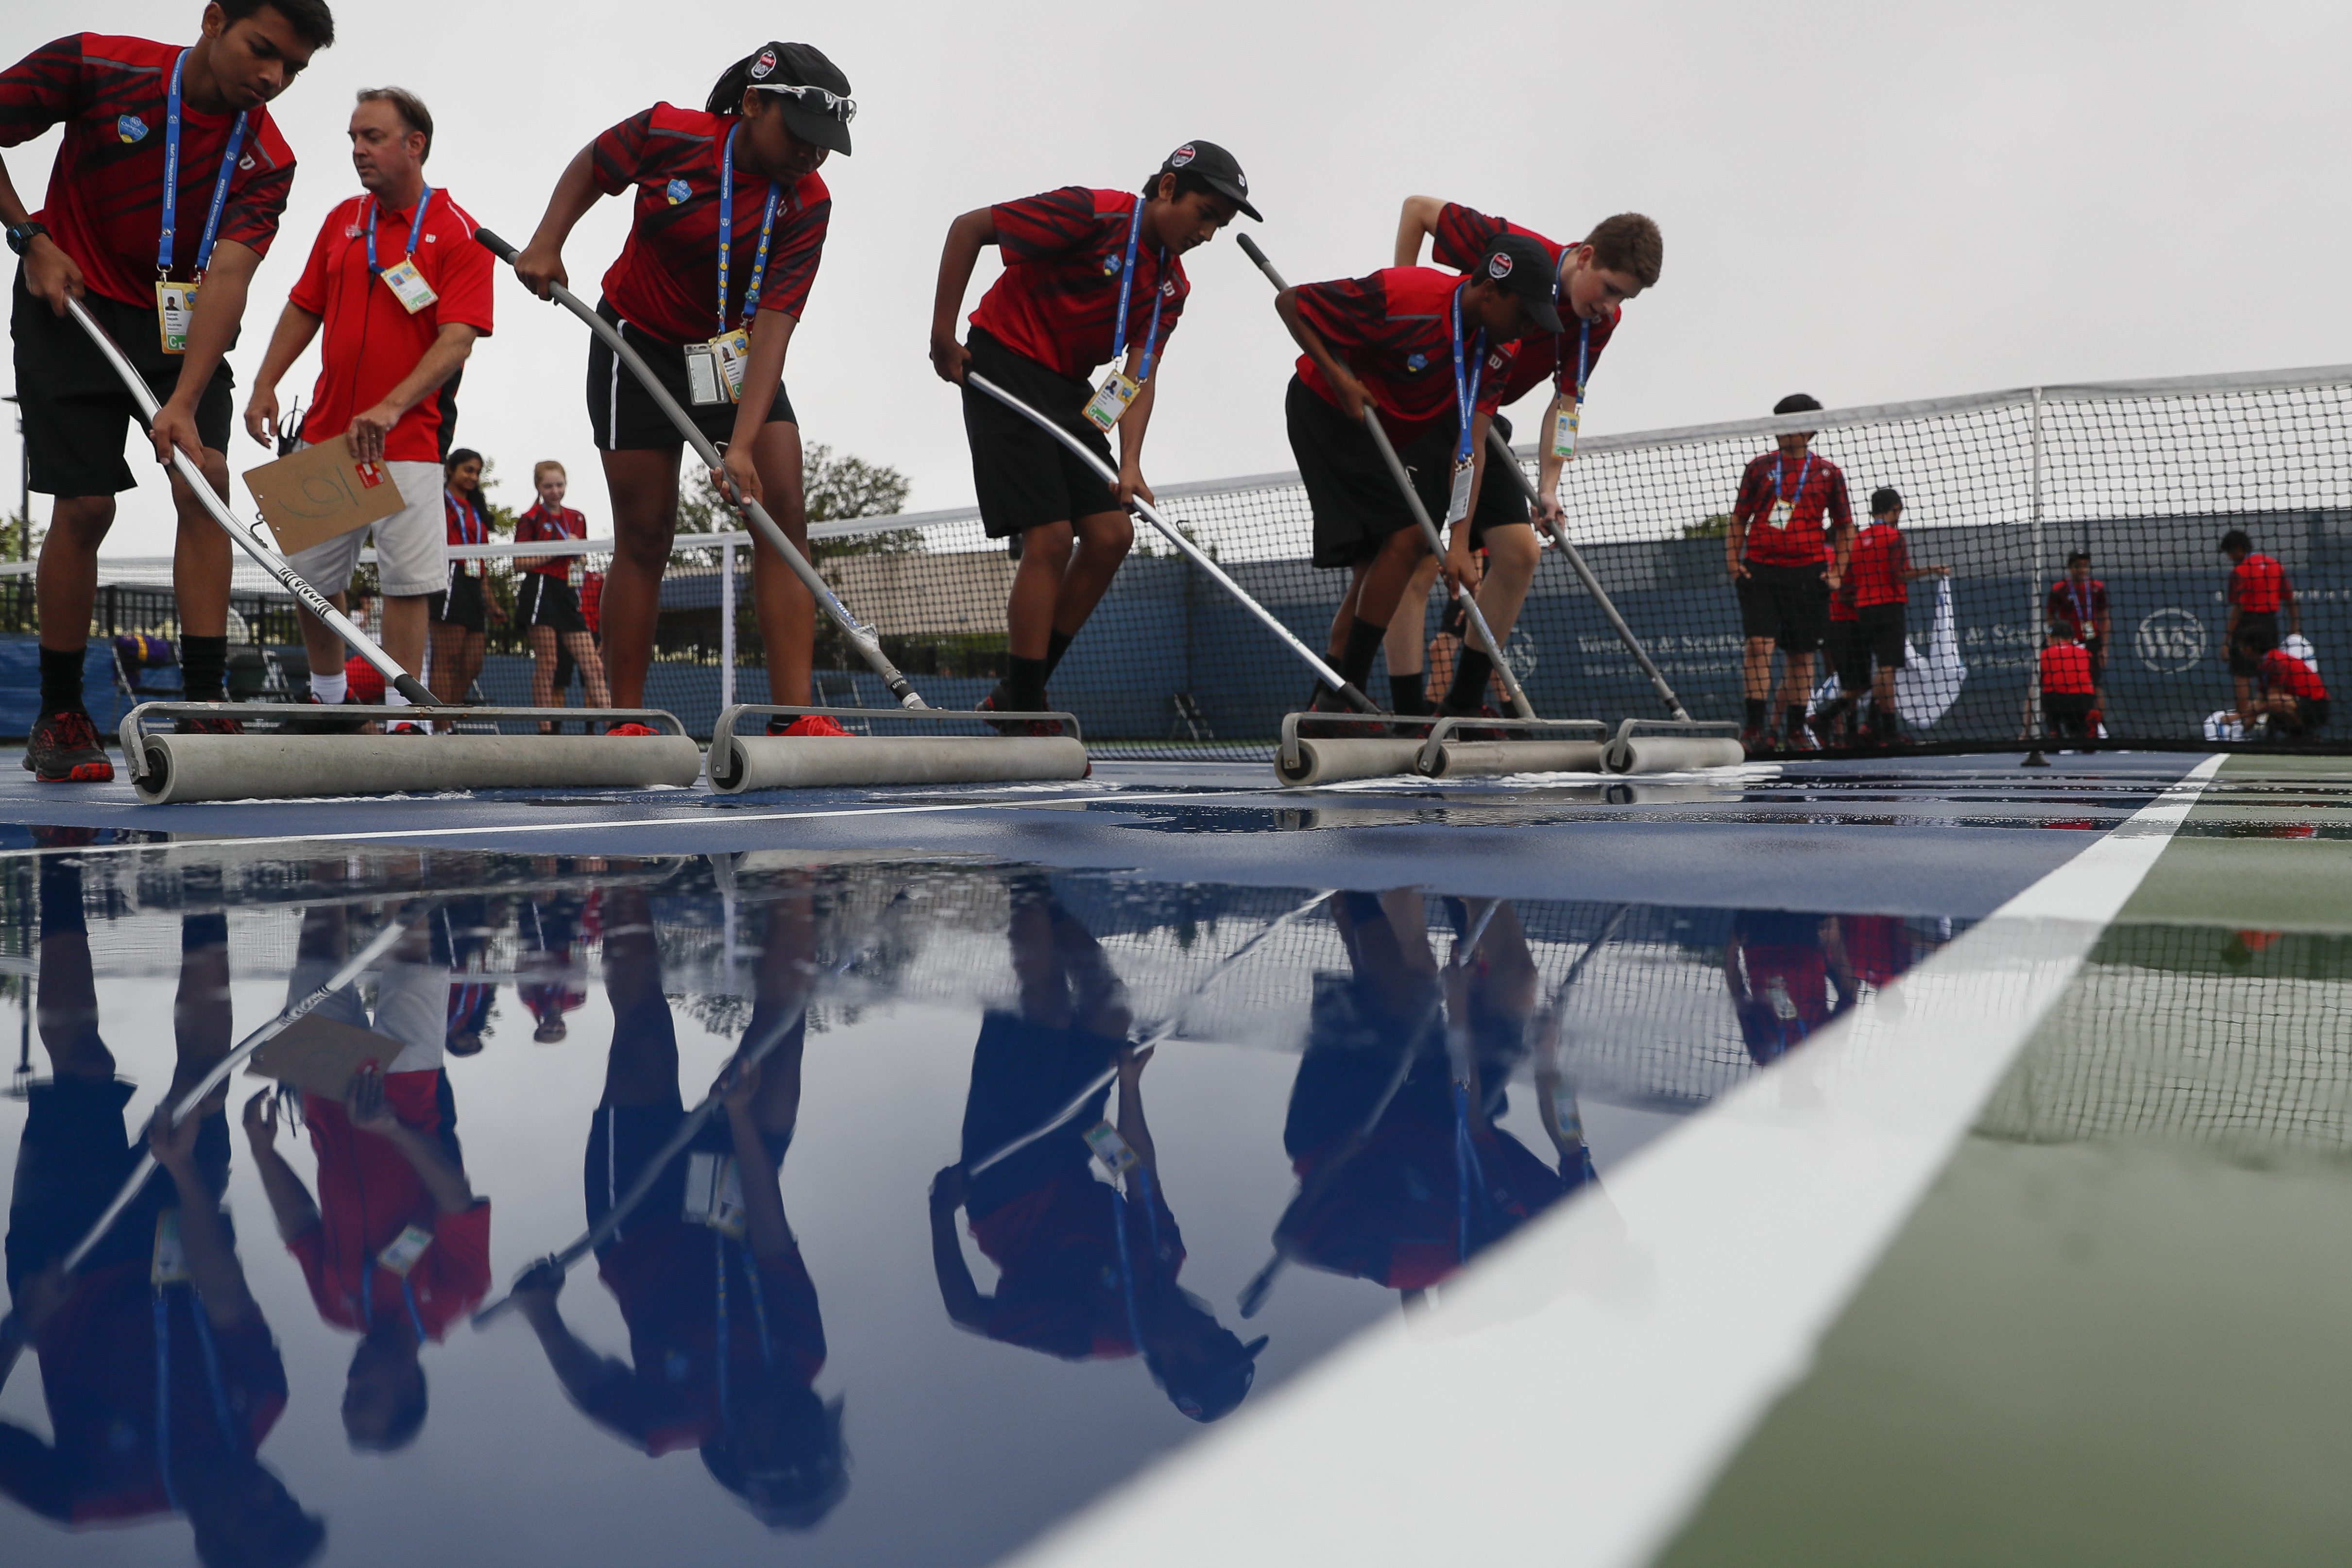 Volunteers prepare the court after rain delayed the opening of the Western & Southern Open tennis tournament, Sunday, Aug. 14, 2016, in Mason, Ohio. (AP Photo/John Minchillo)